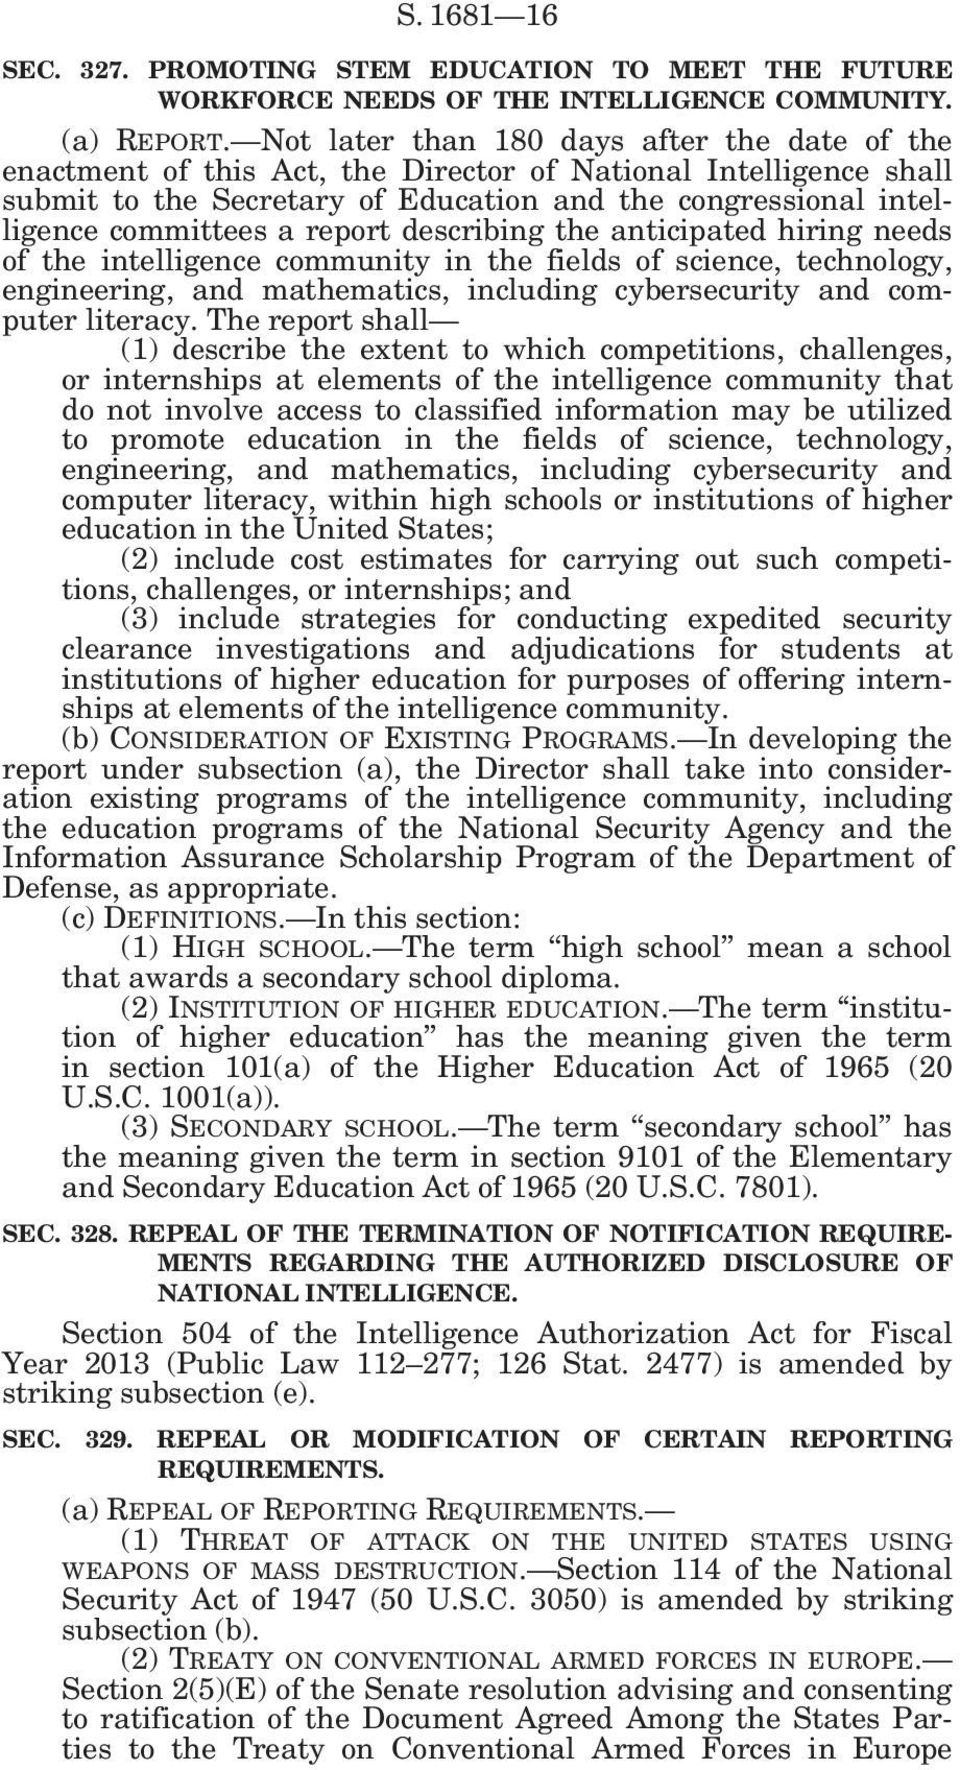 report describing the anticipated hiring needs of the intelligence community in the fields of science, technology, engineering, and mathematics, including cybersecurity and computer literacy.